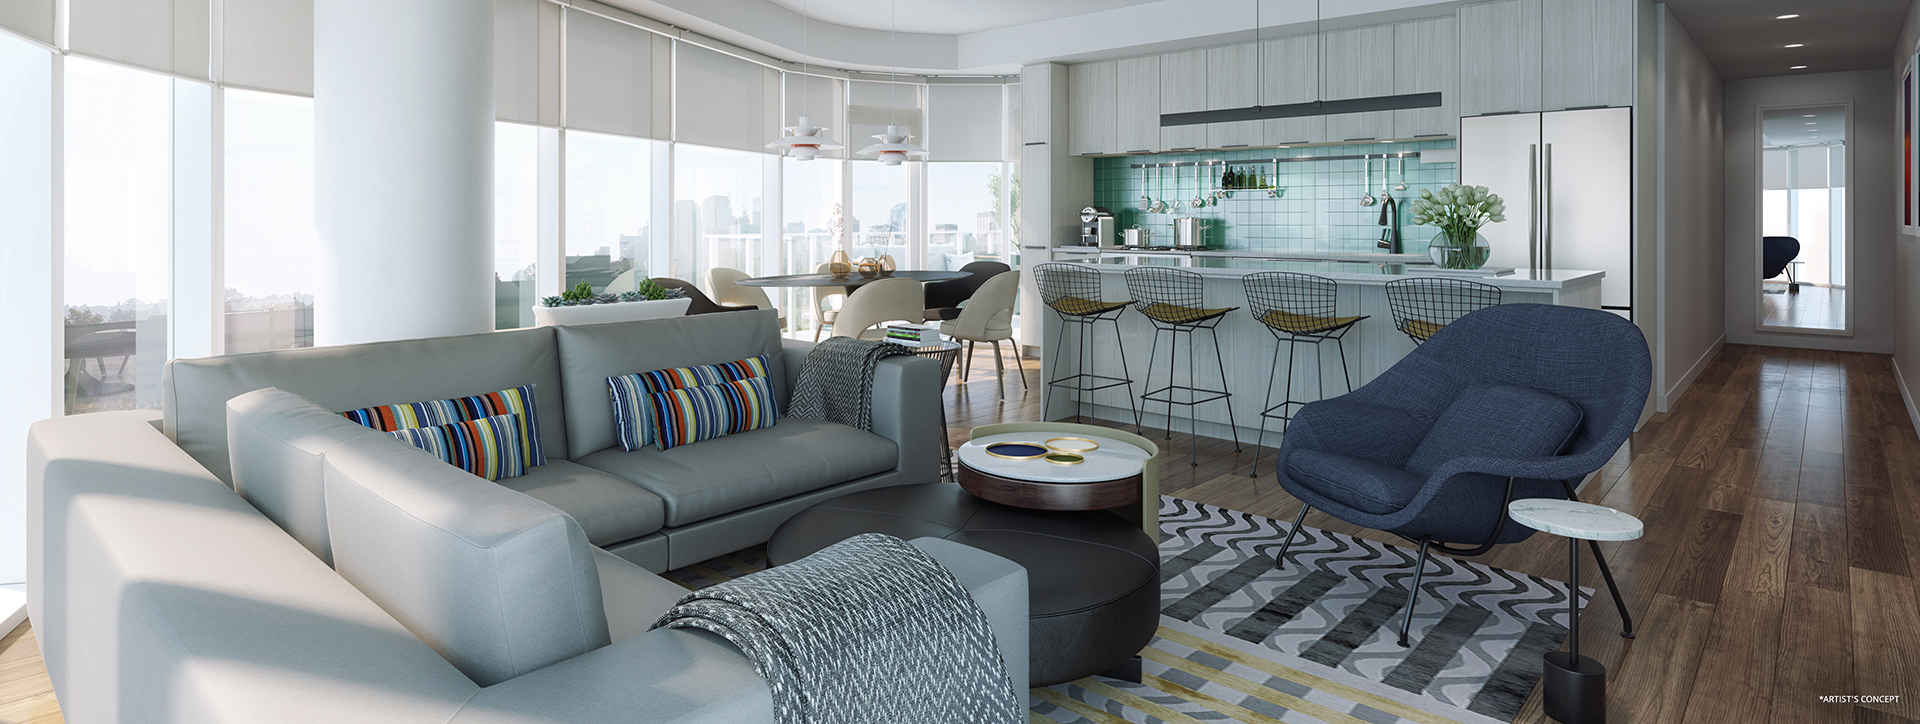 Artists concept of living room and kitchen space in Theodore condo